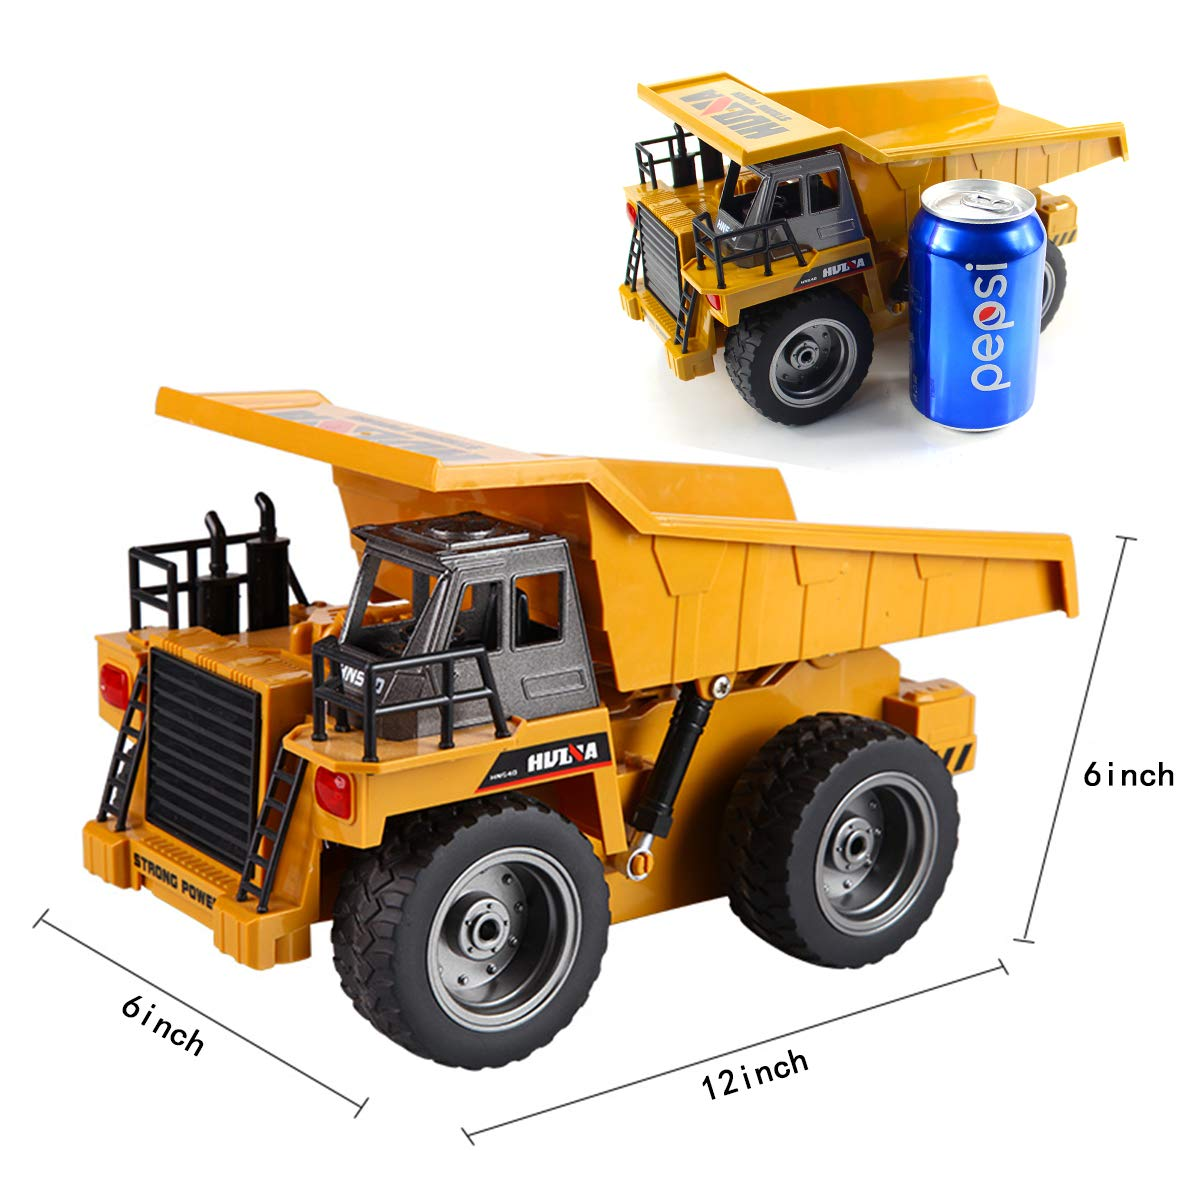 fisca RC Truck 6 Ch 2.4G Alloy Remote Control Dump Truck 4 Wheel Driver Mine Construction Vehicle Toy Machine Model with LED Light by fisca (Image #3)